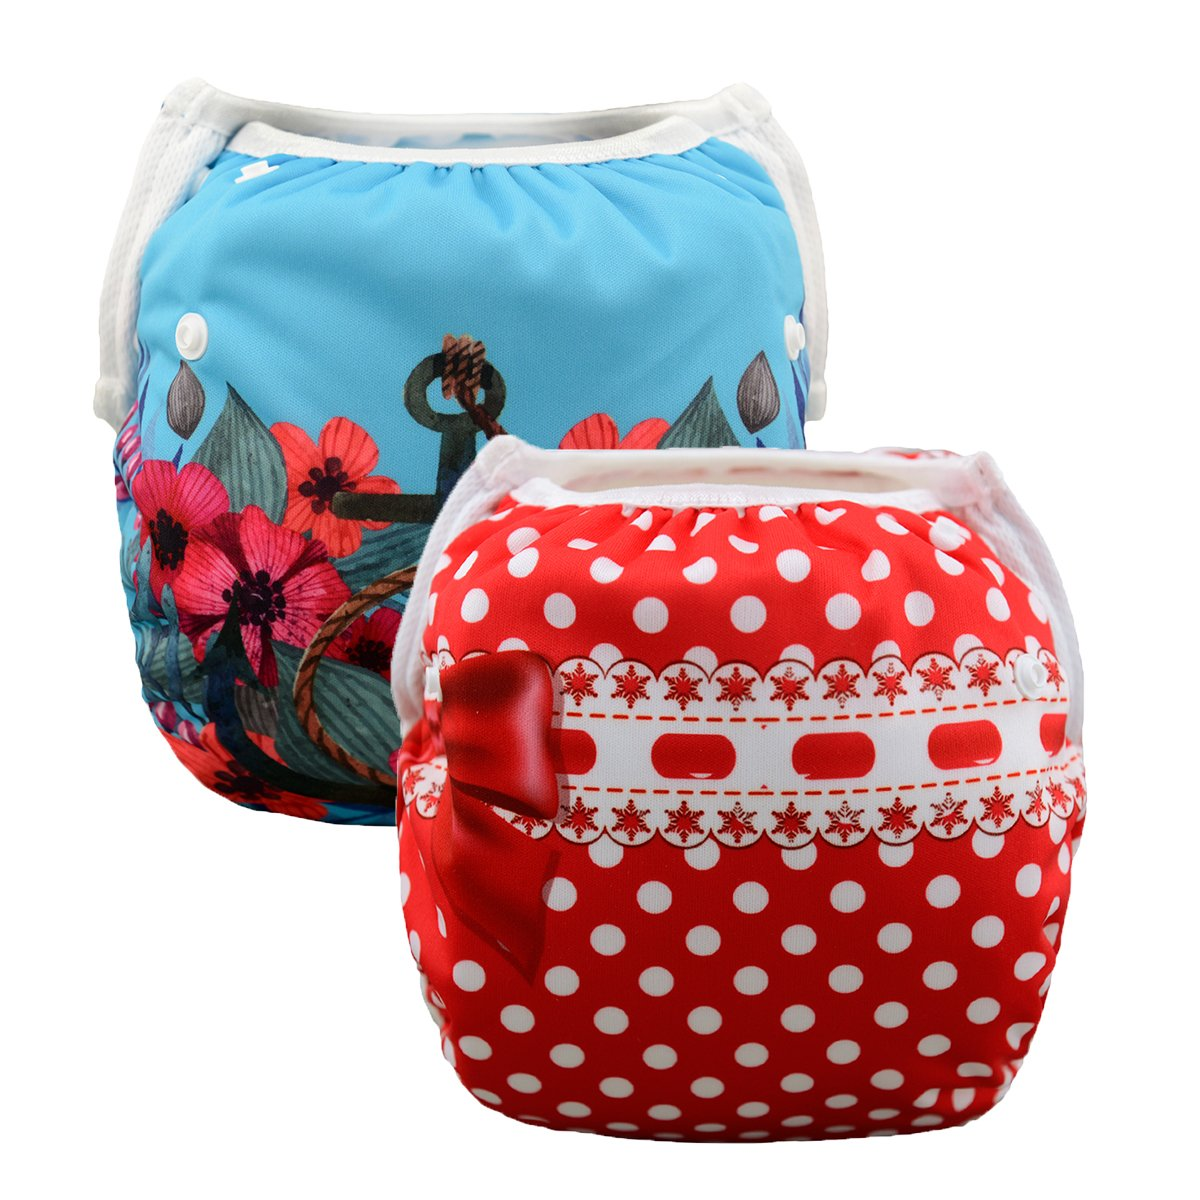 babygoal Baby Reusable Swim Diapers Adjustable for 0-2 Year Baby Boy and Girls Shower Gift Huapin